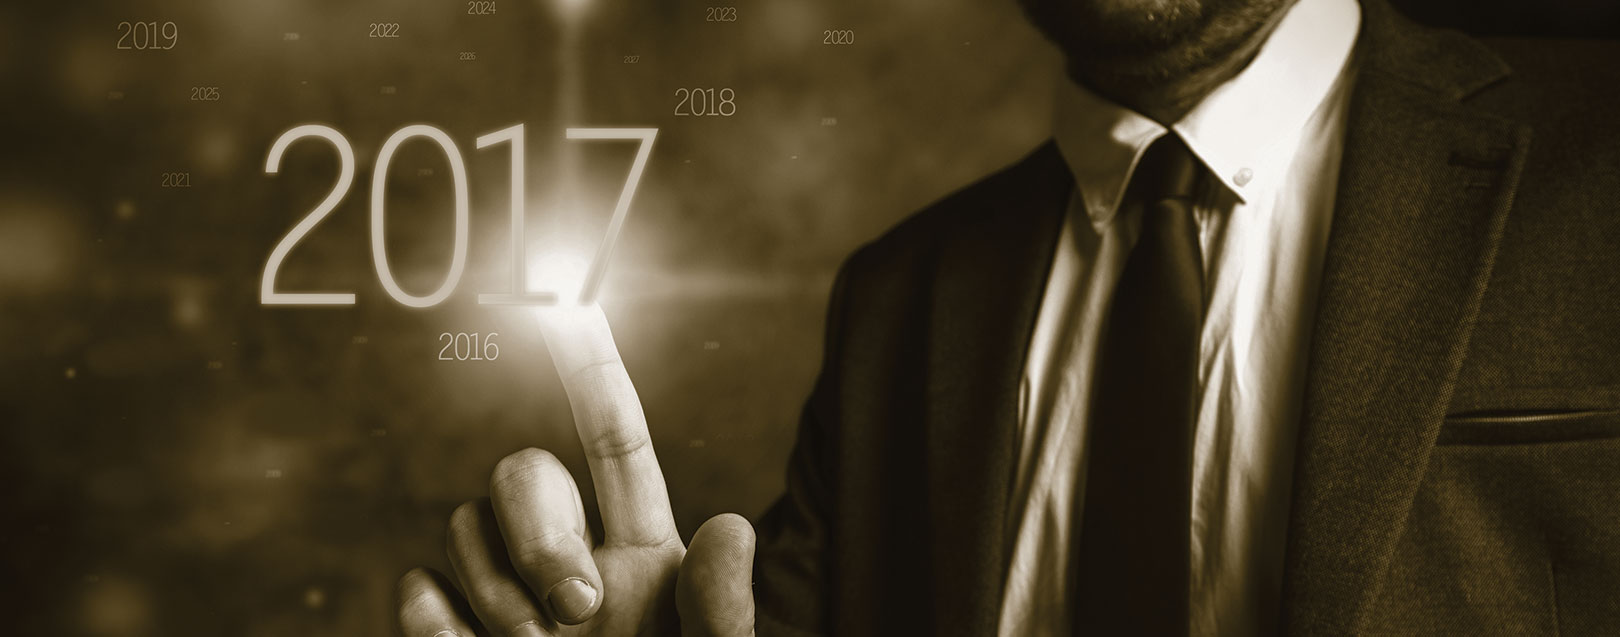 World Trade in 2017-Will World Trade Come out of the Doldrums in 2017? February 2017 issue